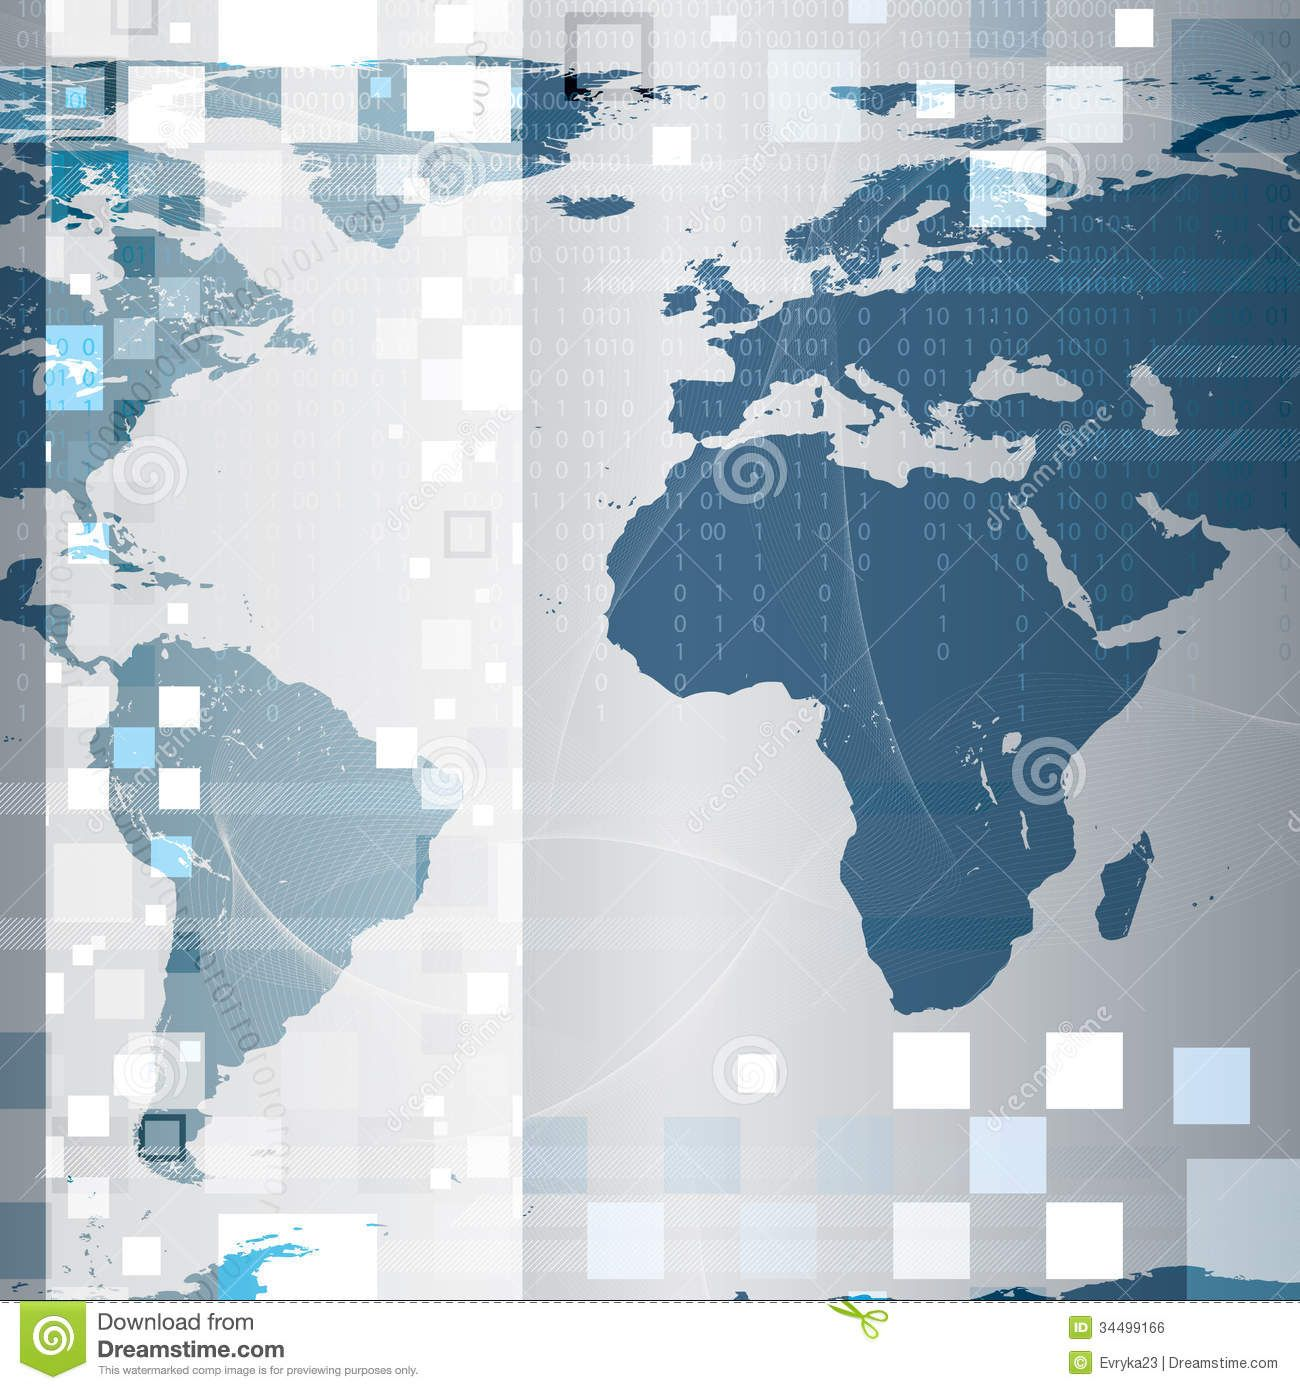 Abstract technology transfer image with world map as background abstract technology transfer image with world map as background royalty free stock image abstract gumiabroncs Images